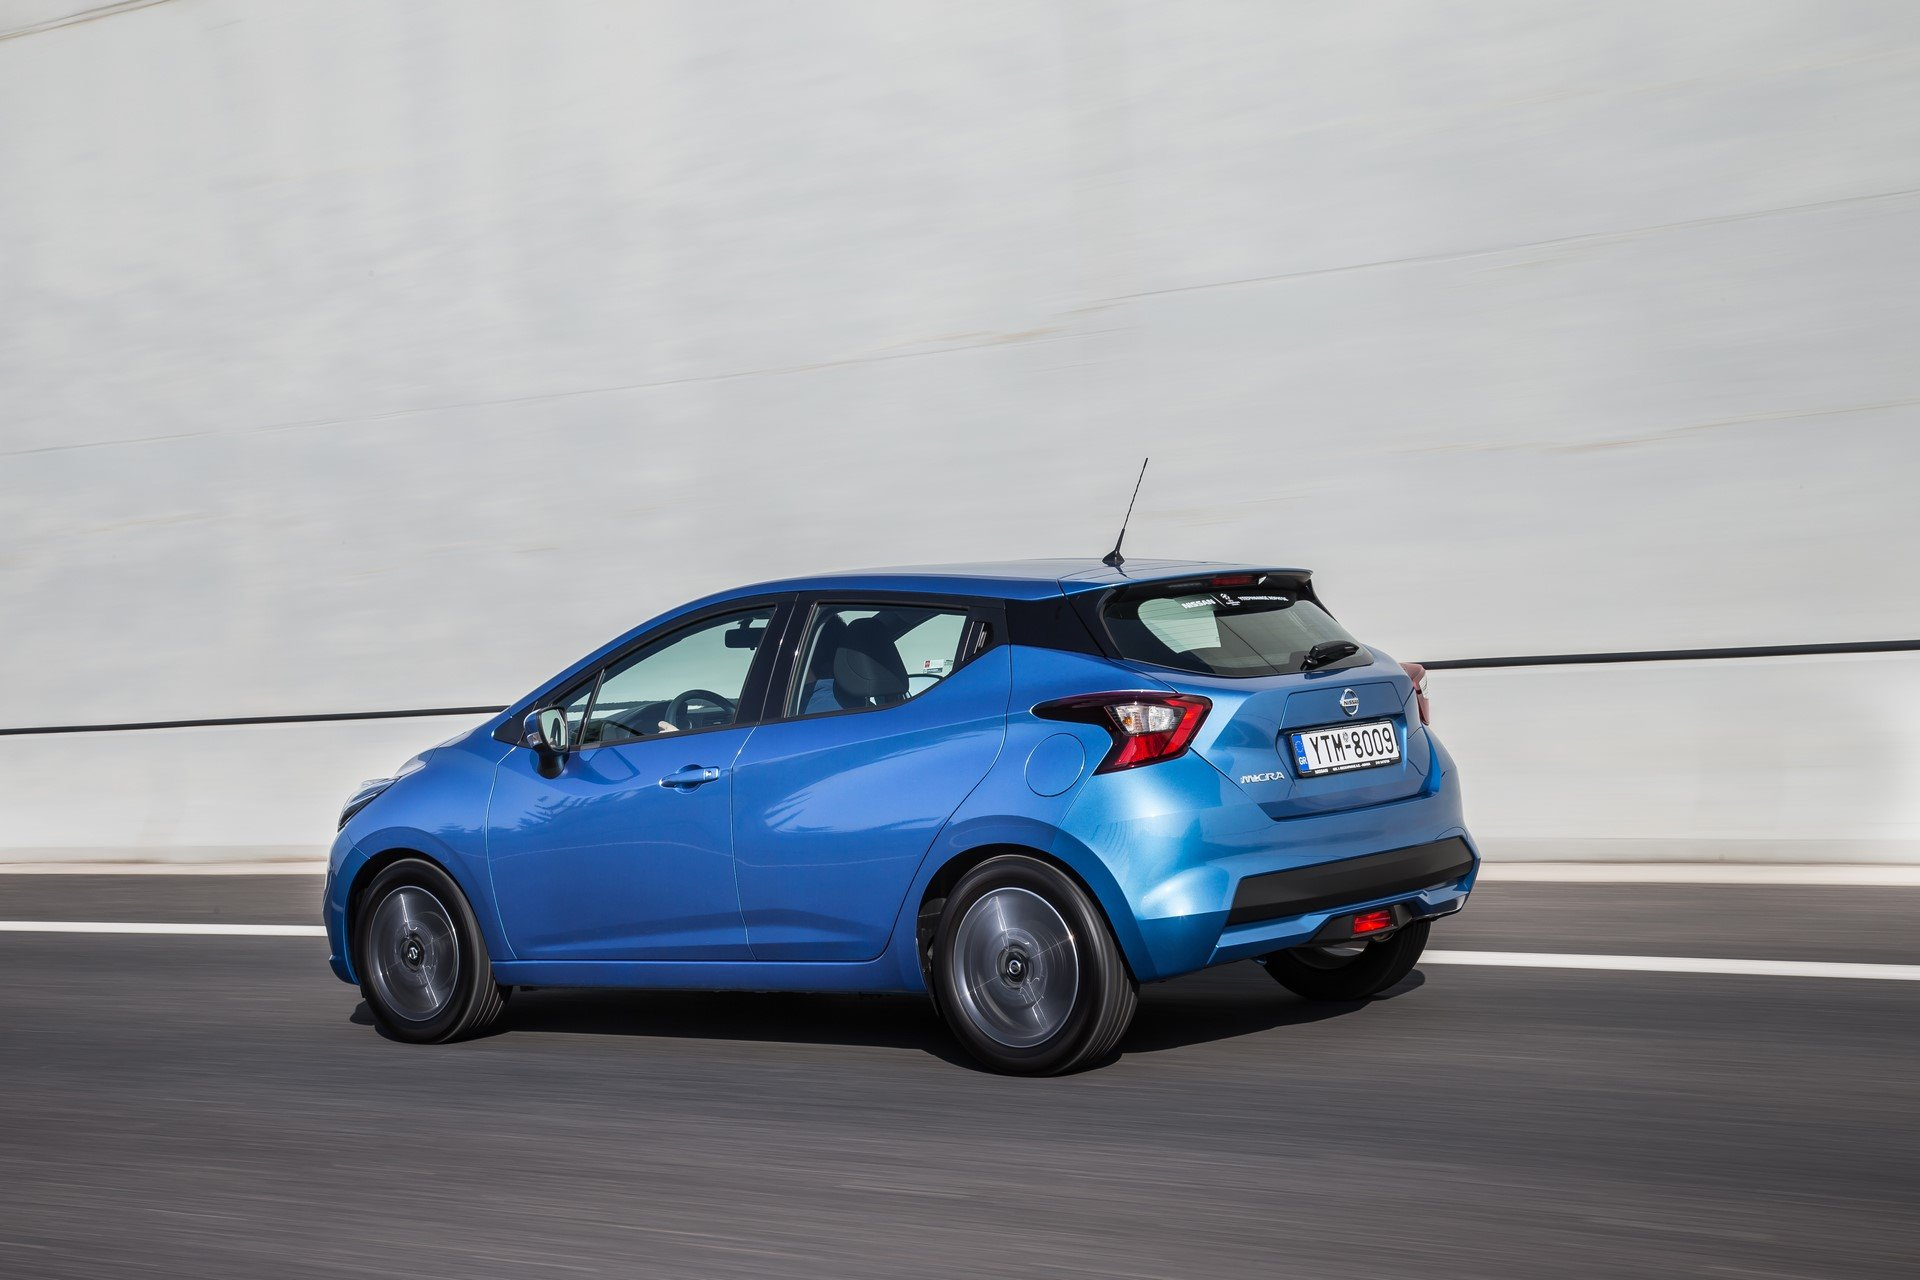 Nissan Micra 2019 Greek (65)